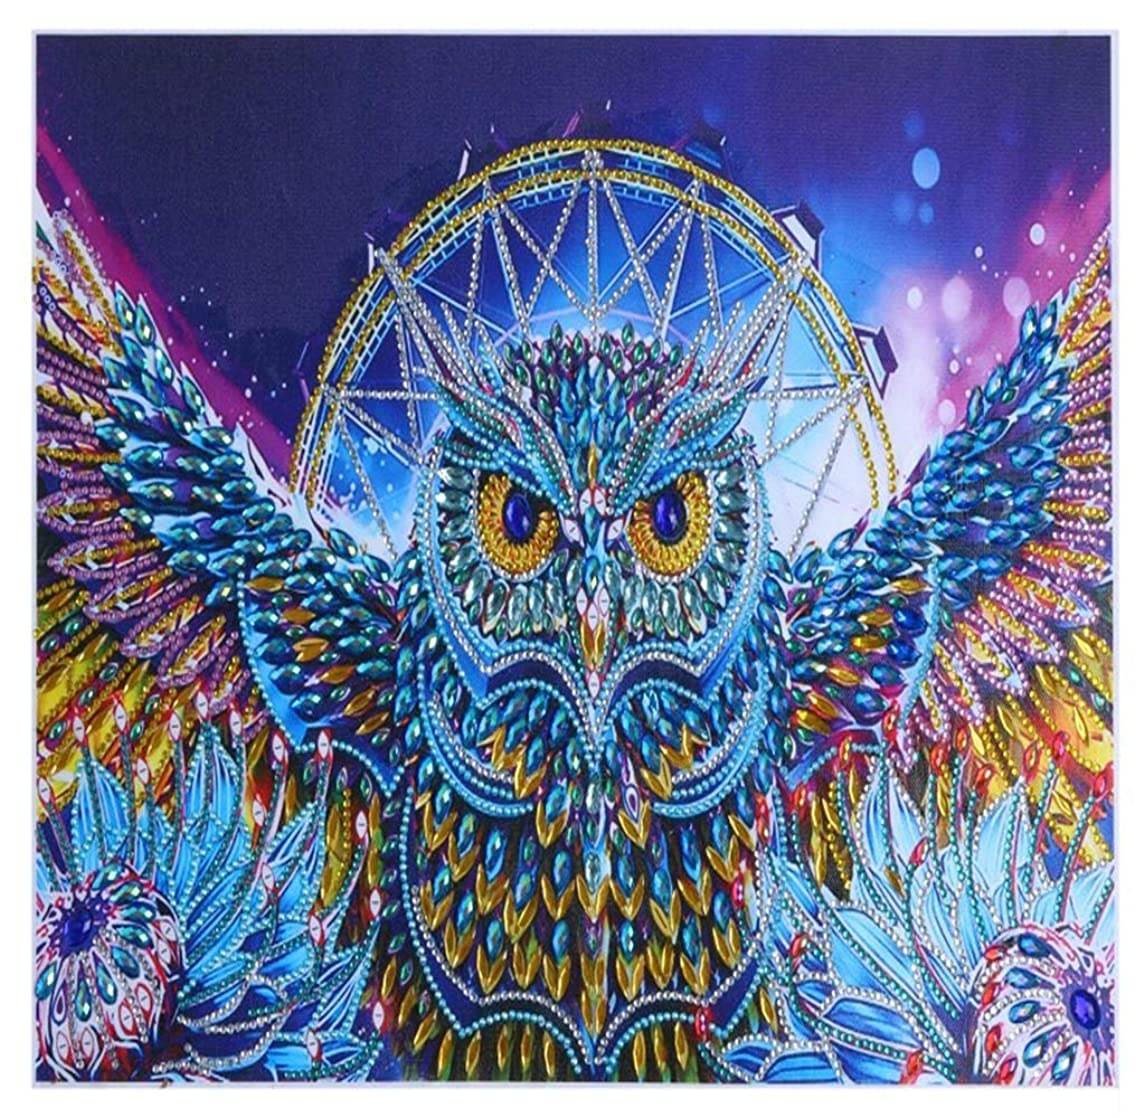 5D Special Shaped Diamond Painting Kit,Eagle Partial Section Drill DIY Diamond Rhinestone Painting Kits for Adults and Children Embroidery Arts Craft Home Decor Ross Beauty